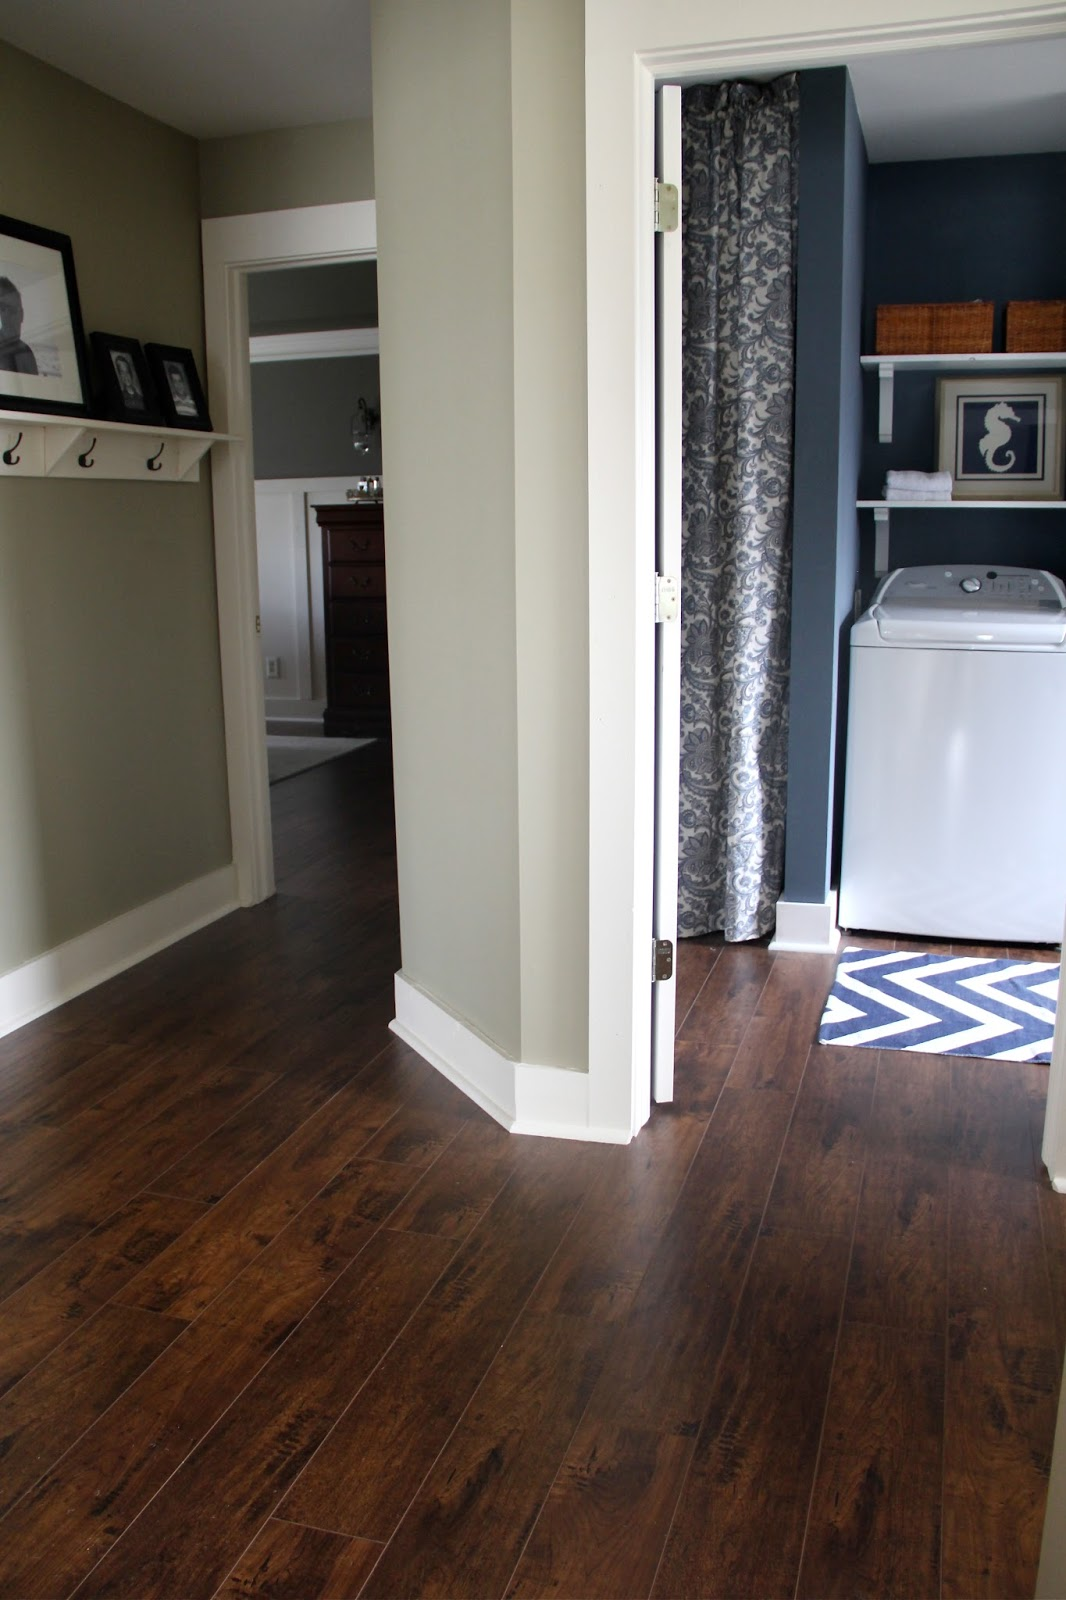 The yellow cape cod update and faq on my sams club floors Paint colors that go with grey flooring